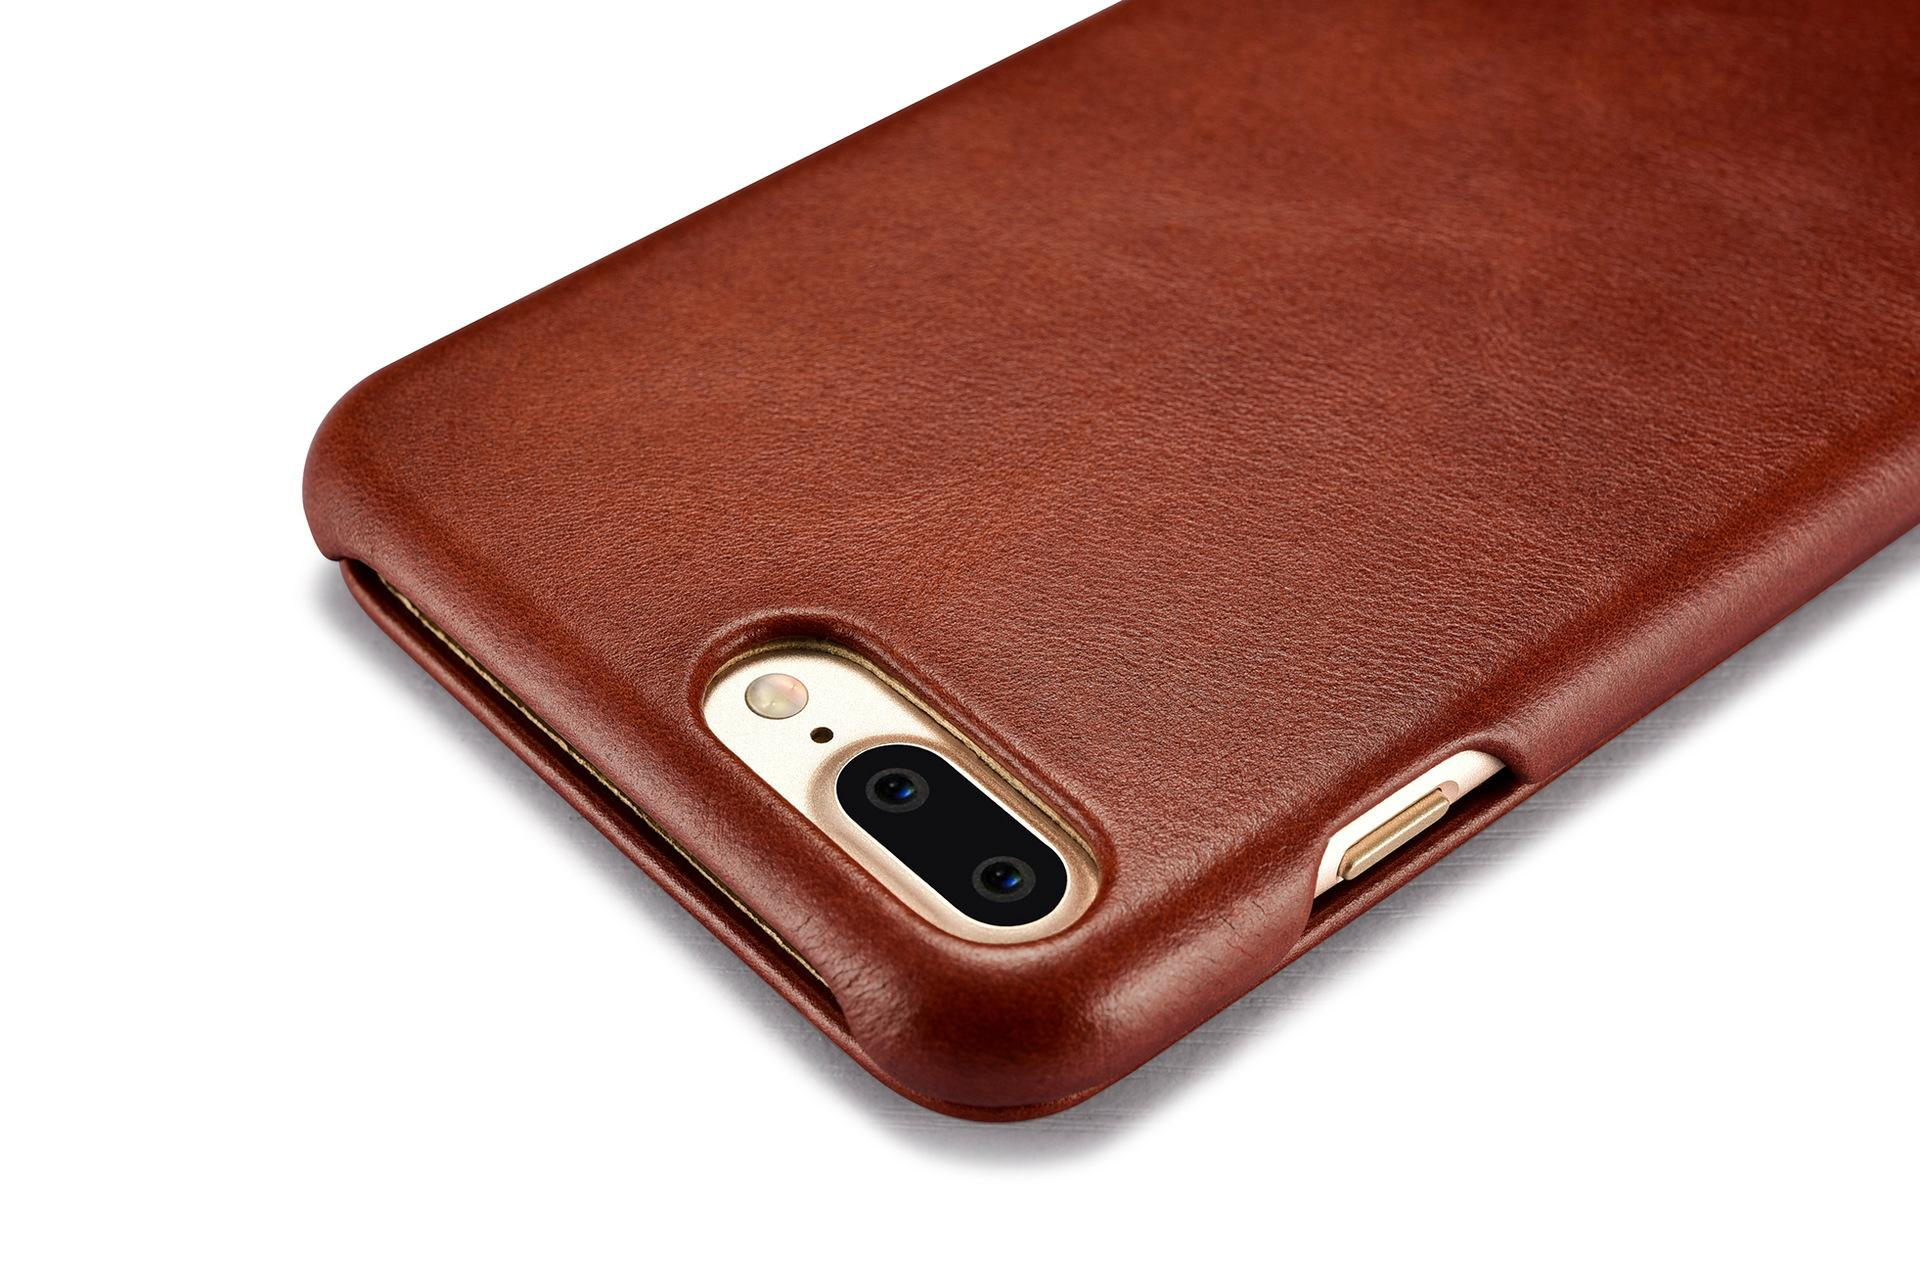 iCarer iPhone 7 Plus Curved Edge Vintage Series Genuine Leather Case 13